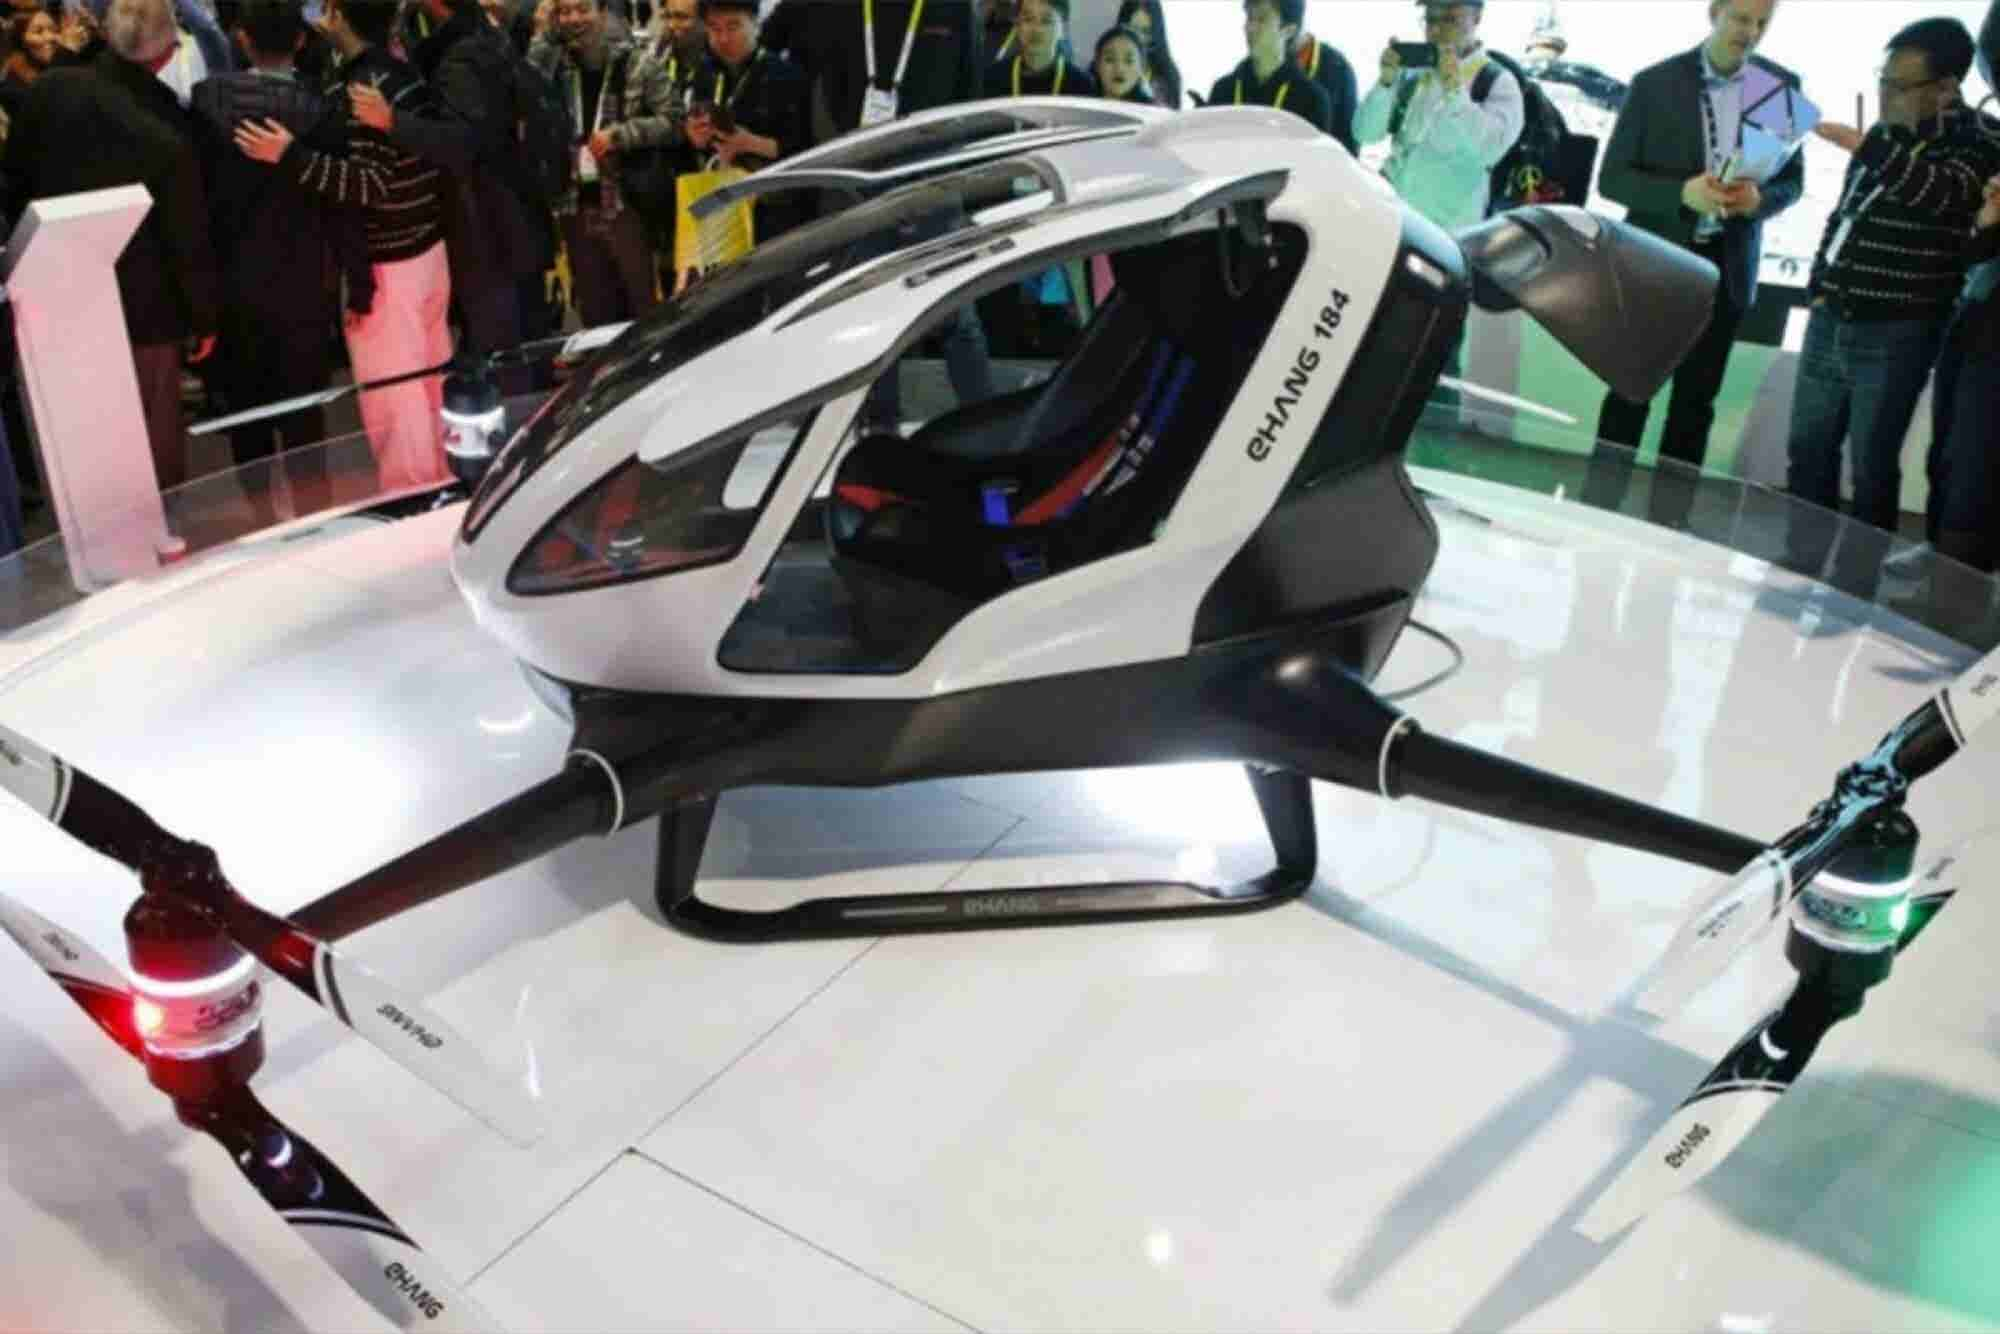 Would You Fly in This Single-Passenger Drone?